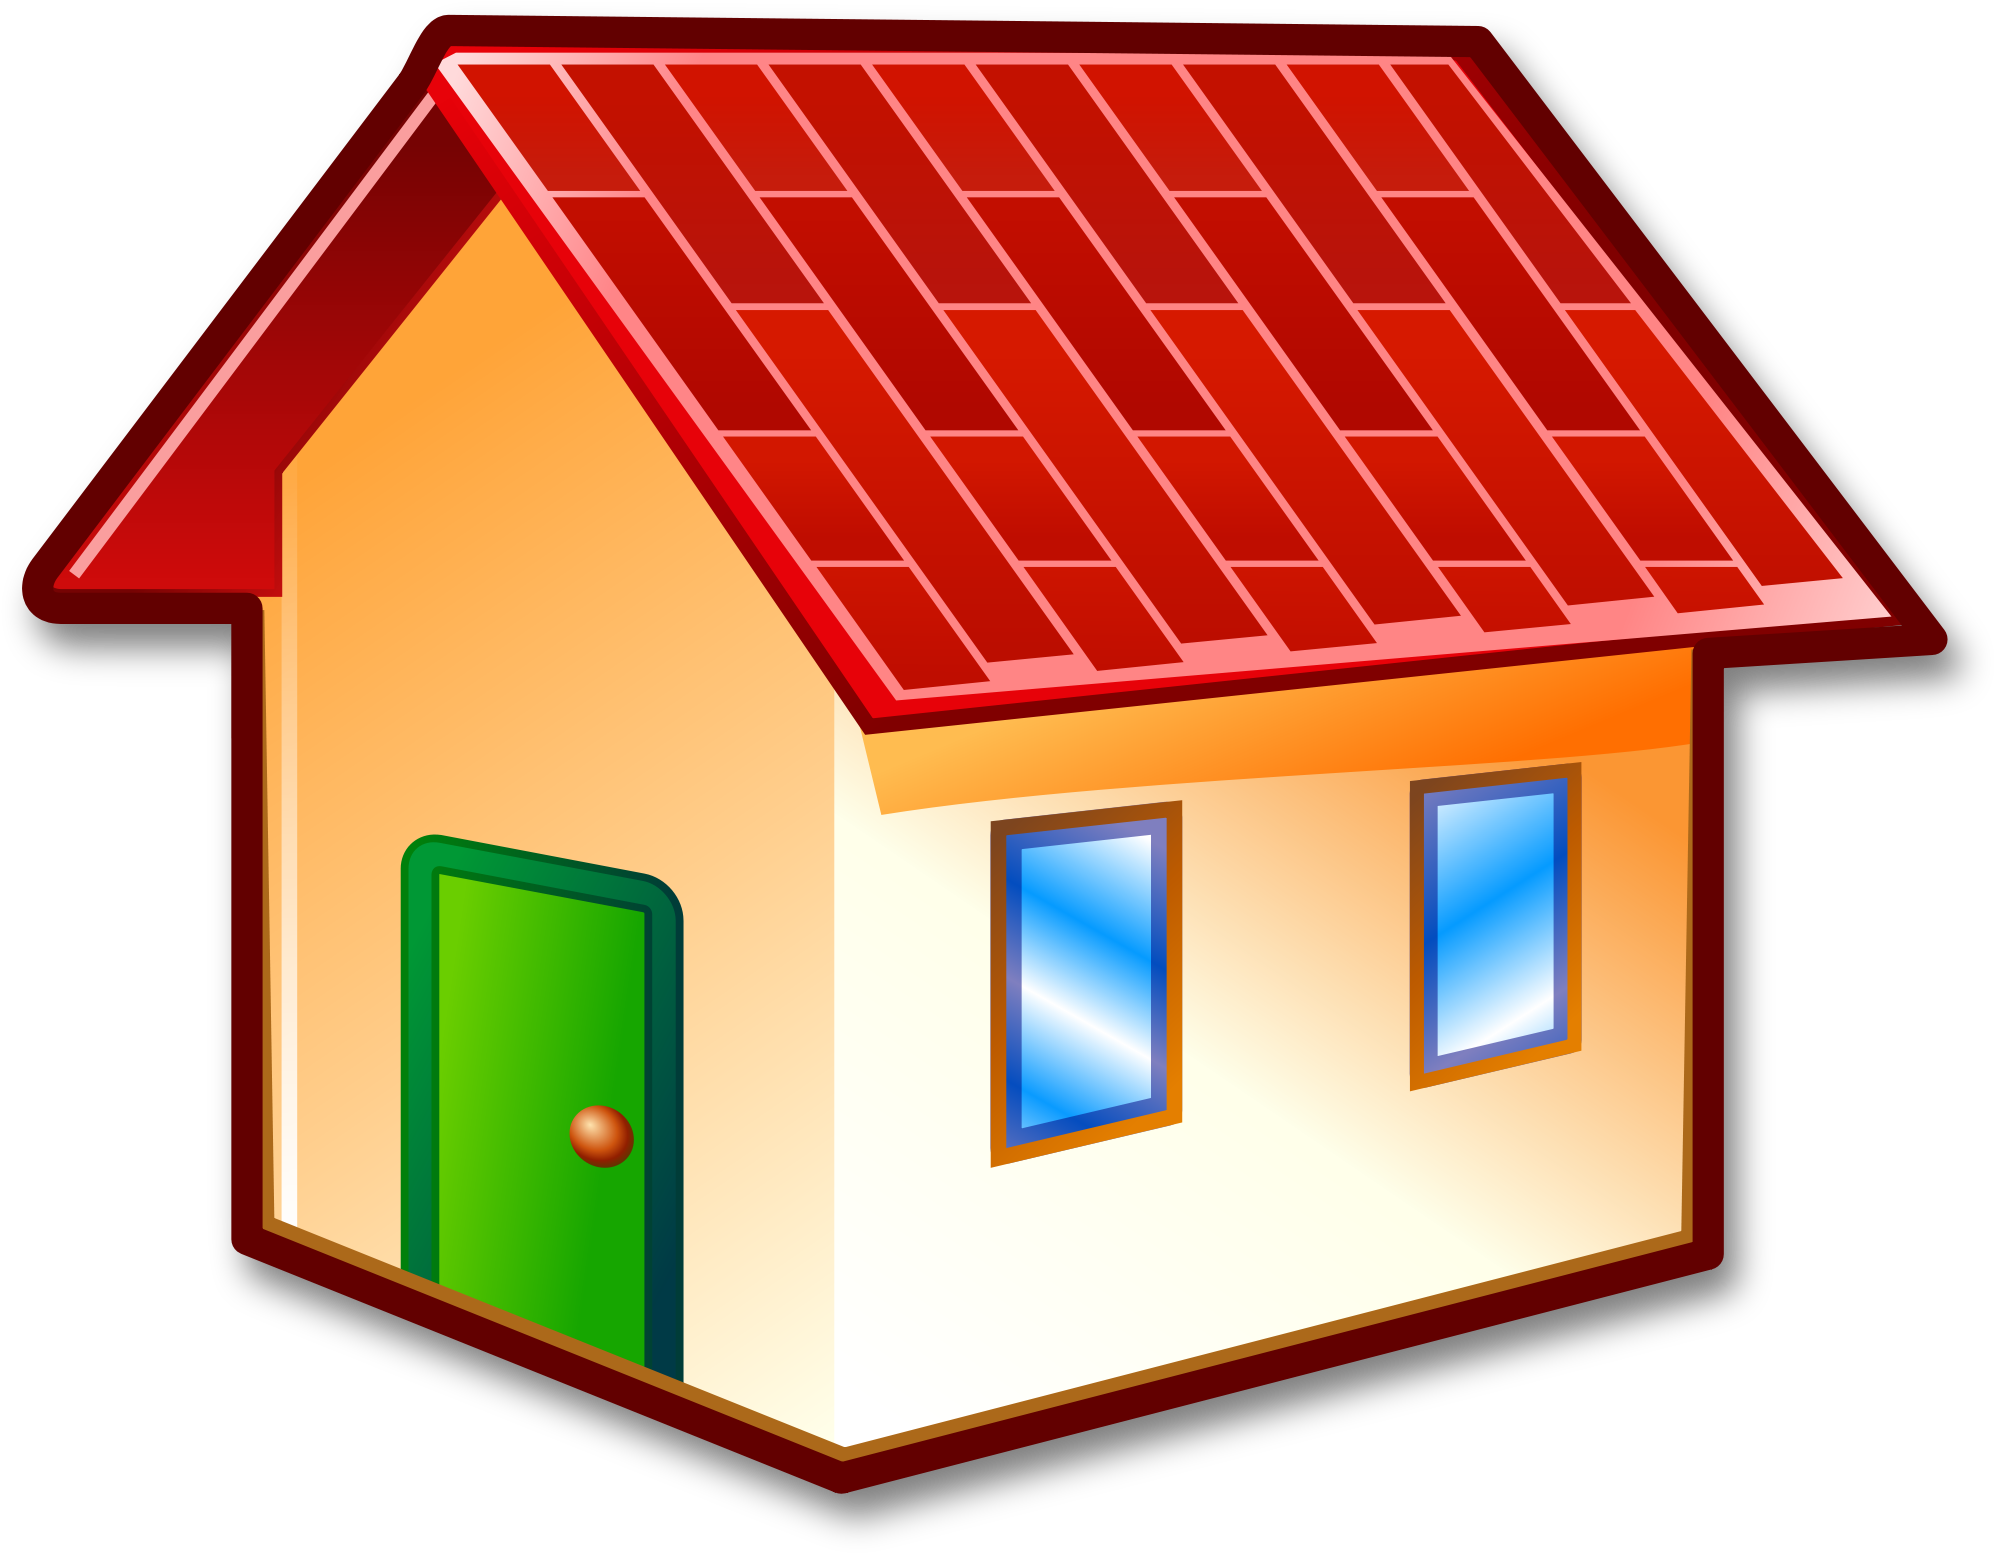 House Hd Clipart House Free Clipart.